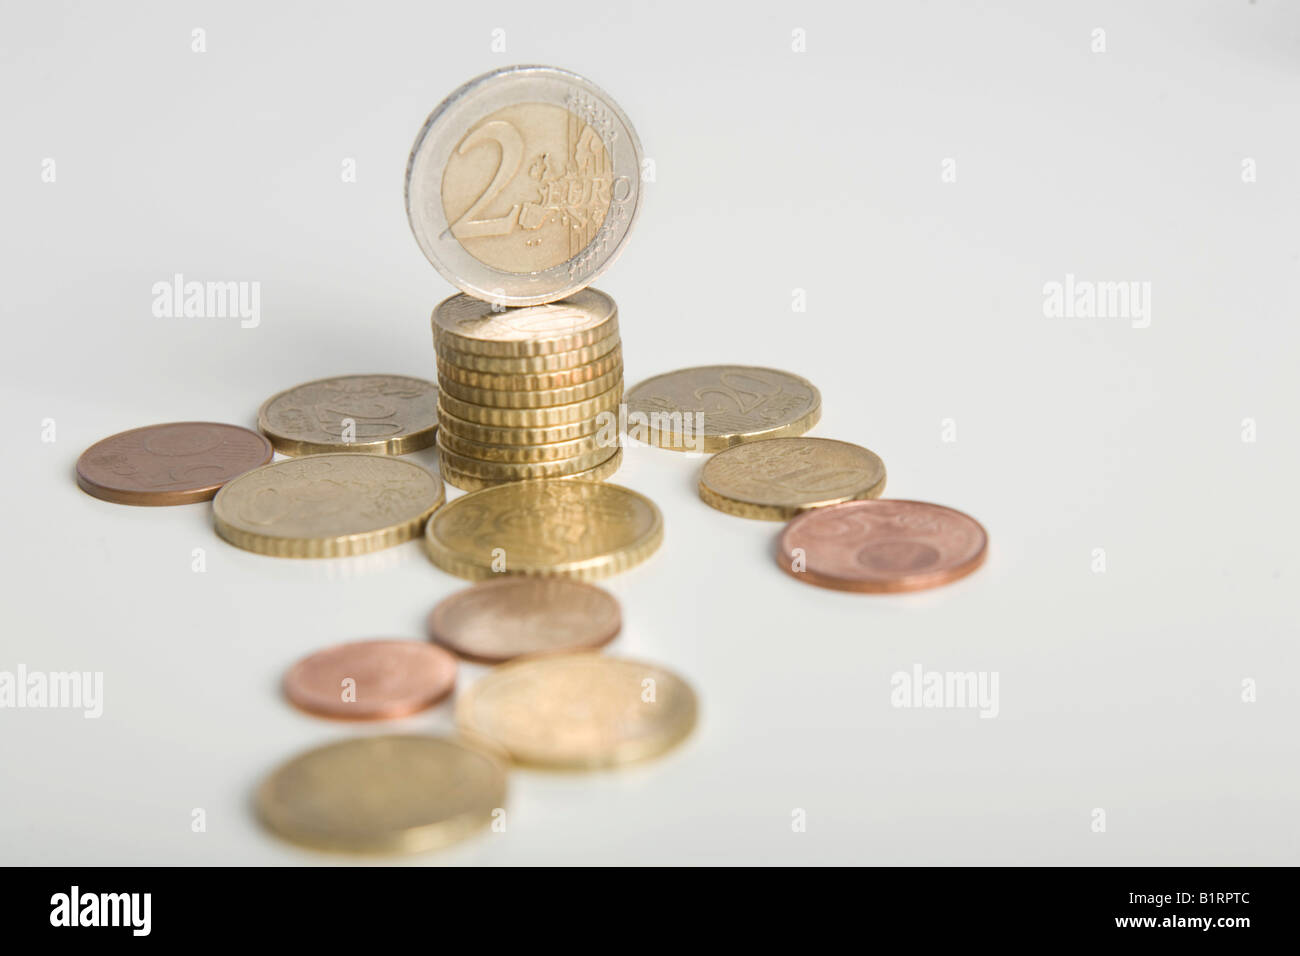 Stacked Euro coins and other coins lying on a table - Stock Image